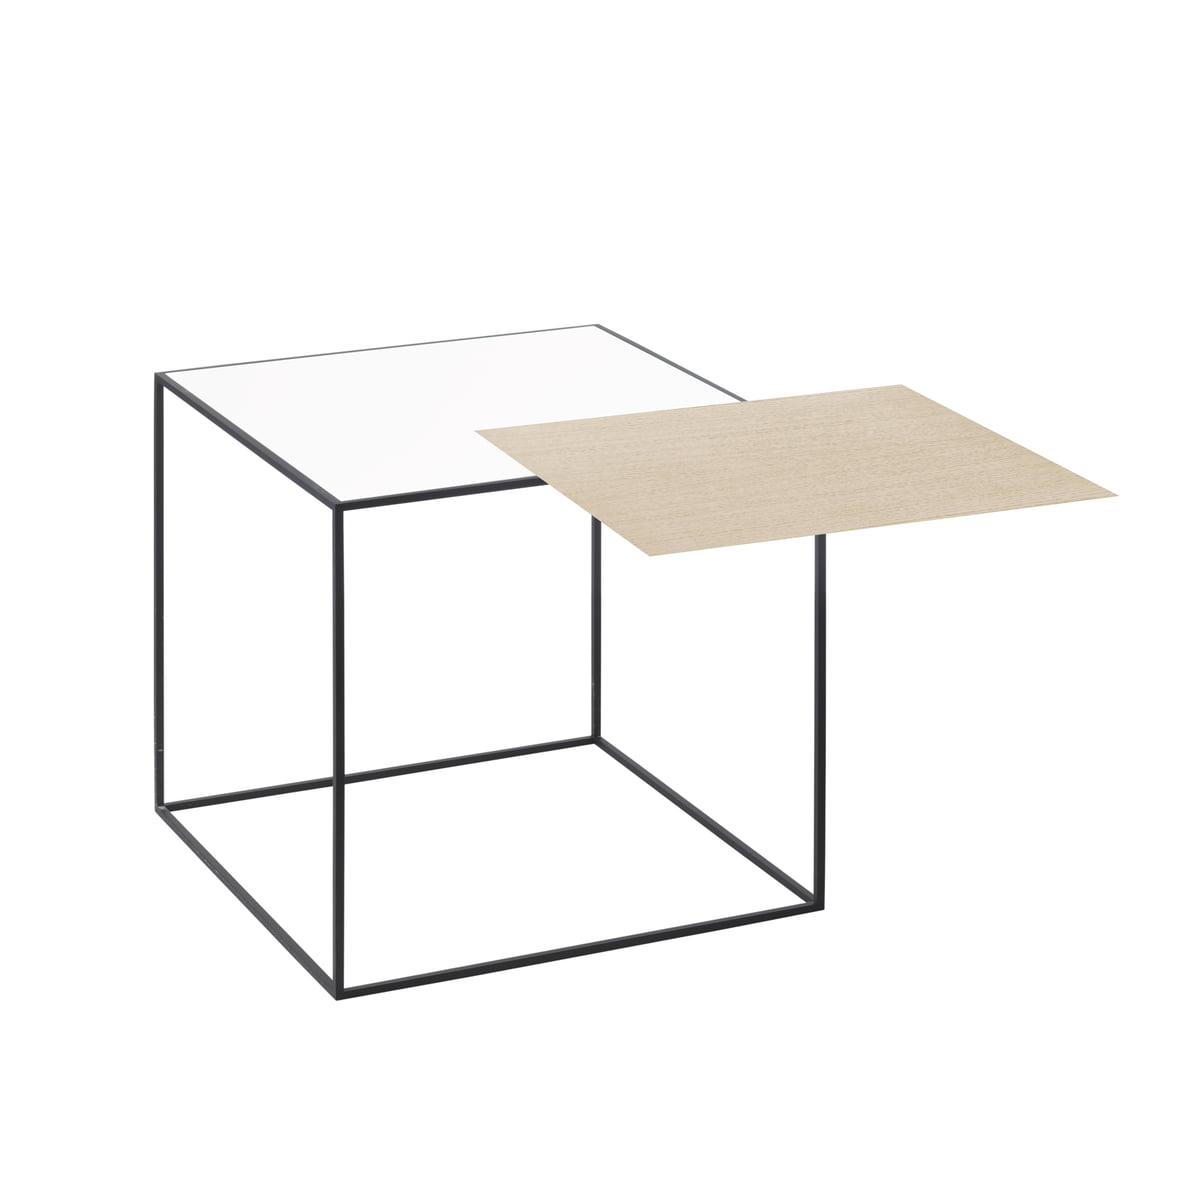 twin side table from by lassen. Black Bedroom Furniture Sets. Home Design Ideas